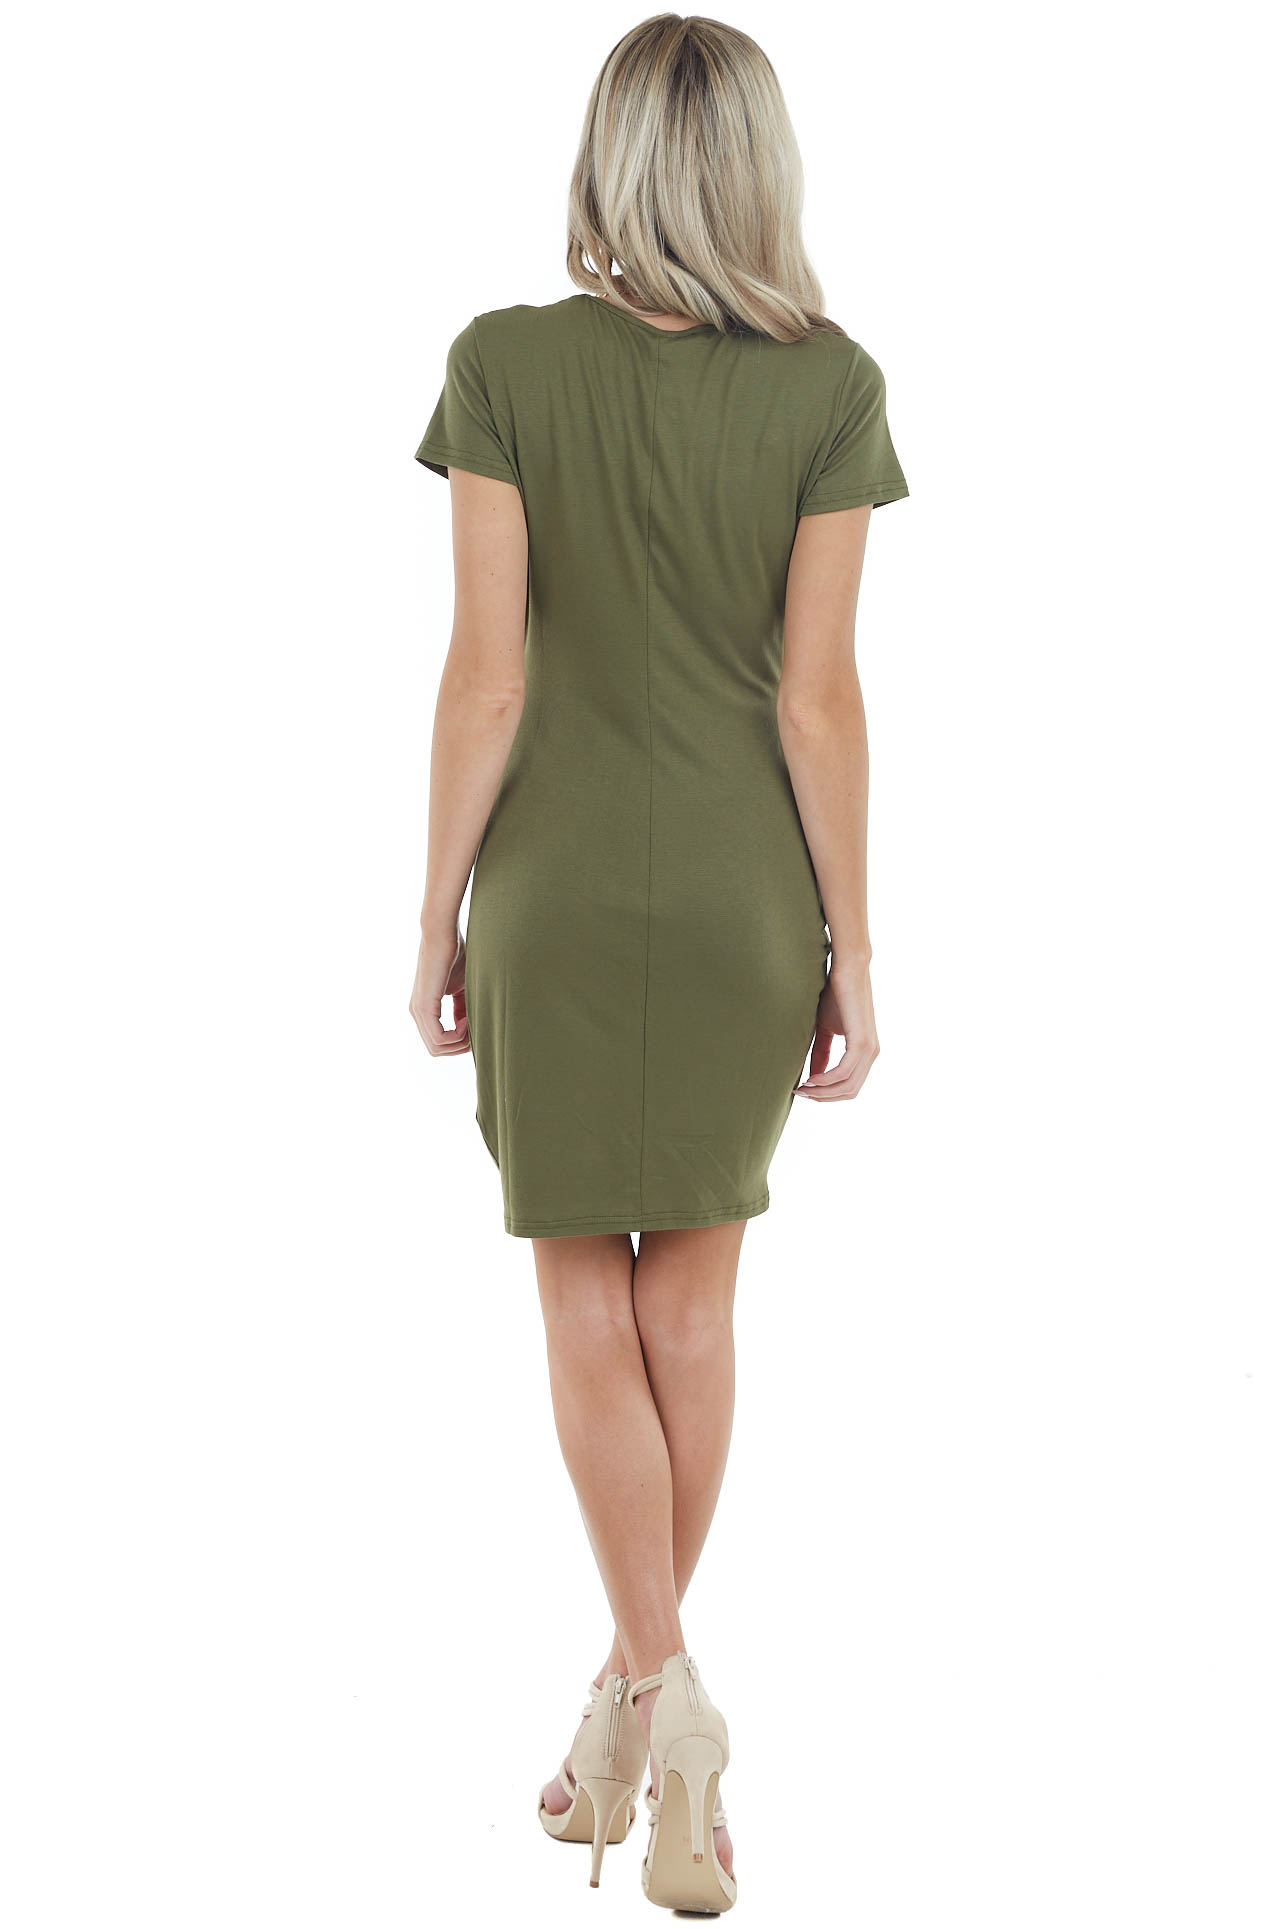 Olive Short Sleeve Bodycon Side Ruched Dress with Side Slit